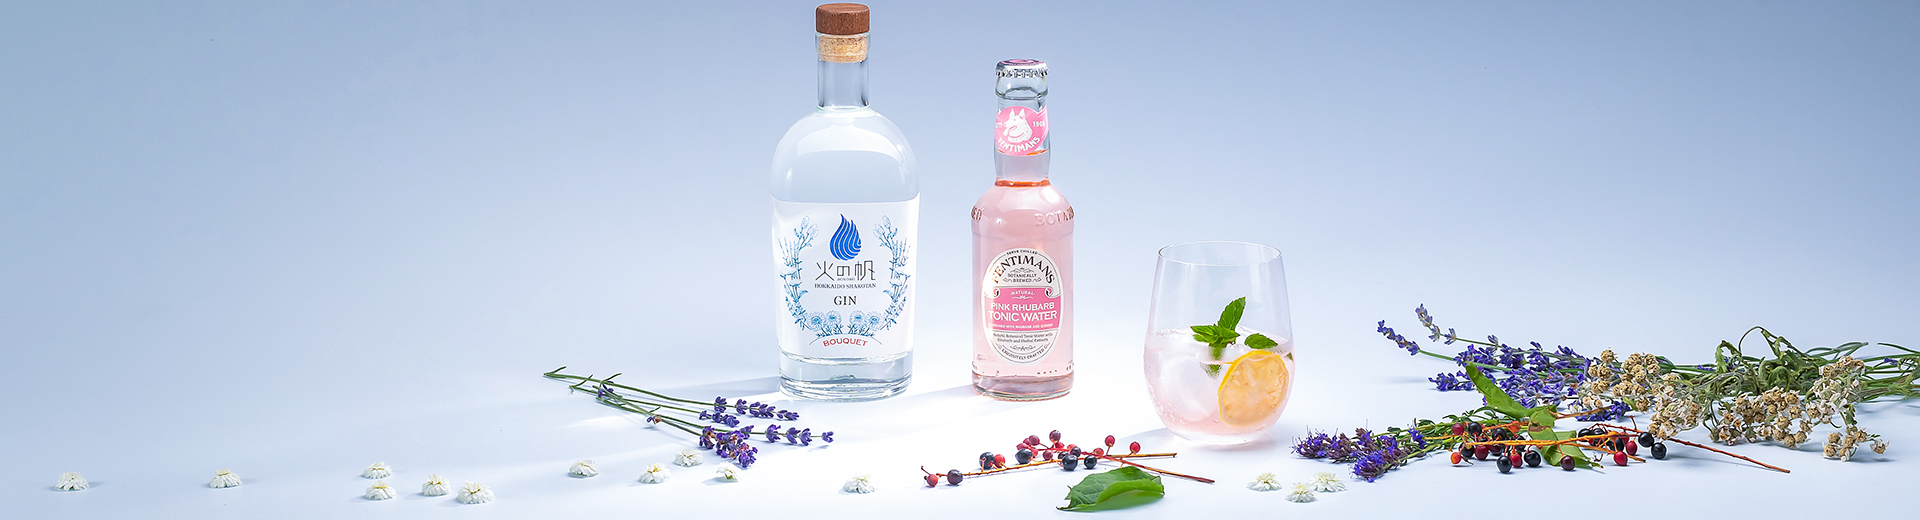 BOUQUET and 【Fentimans】Pink Tonic Water